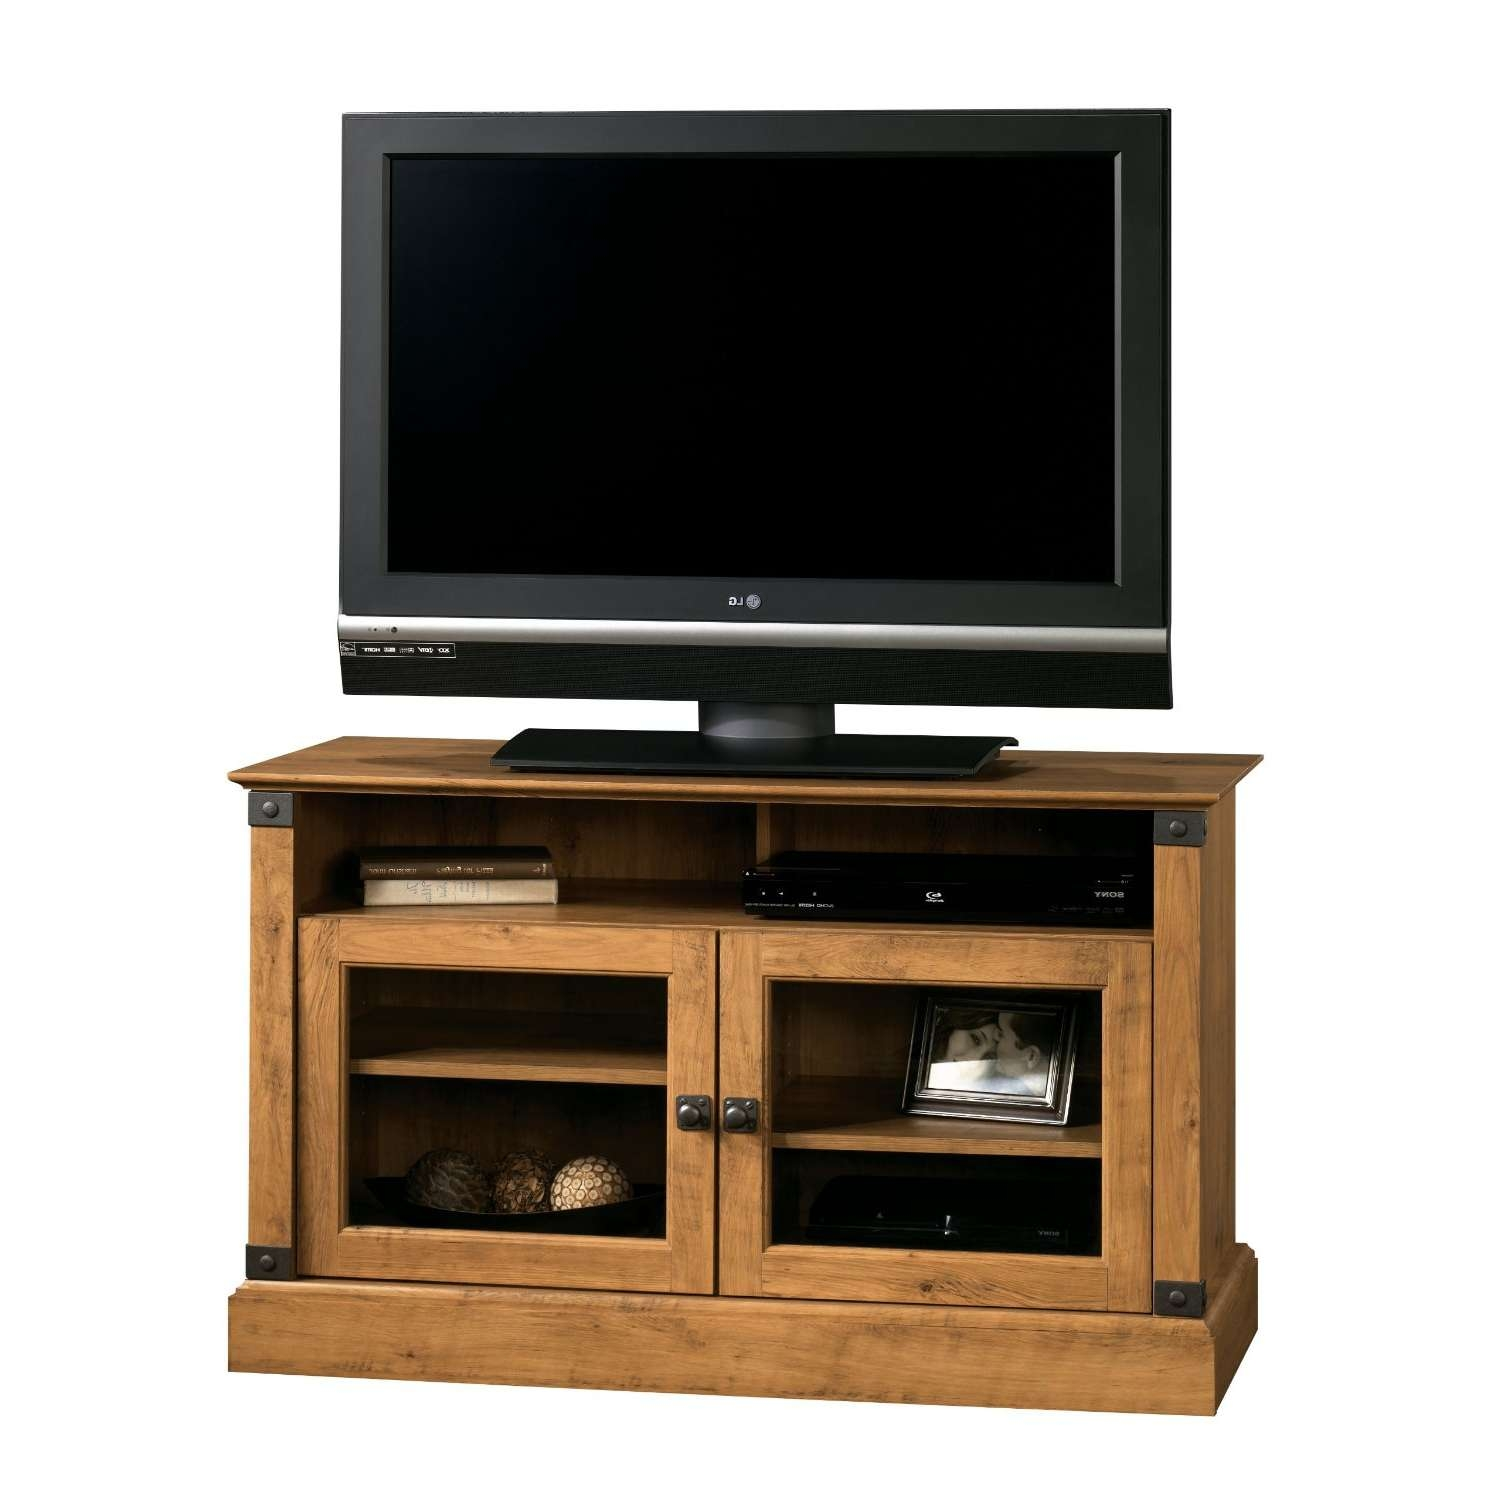 Furniture: Turquoise Reclaimed Wood Tv Stand With Glass Door For With Wooden Tv Cabinets With Glass Doors (View 7 of 20)